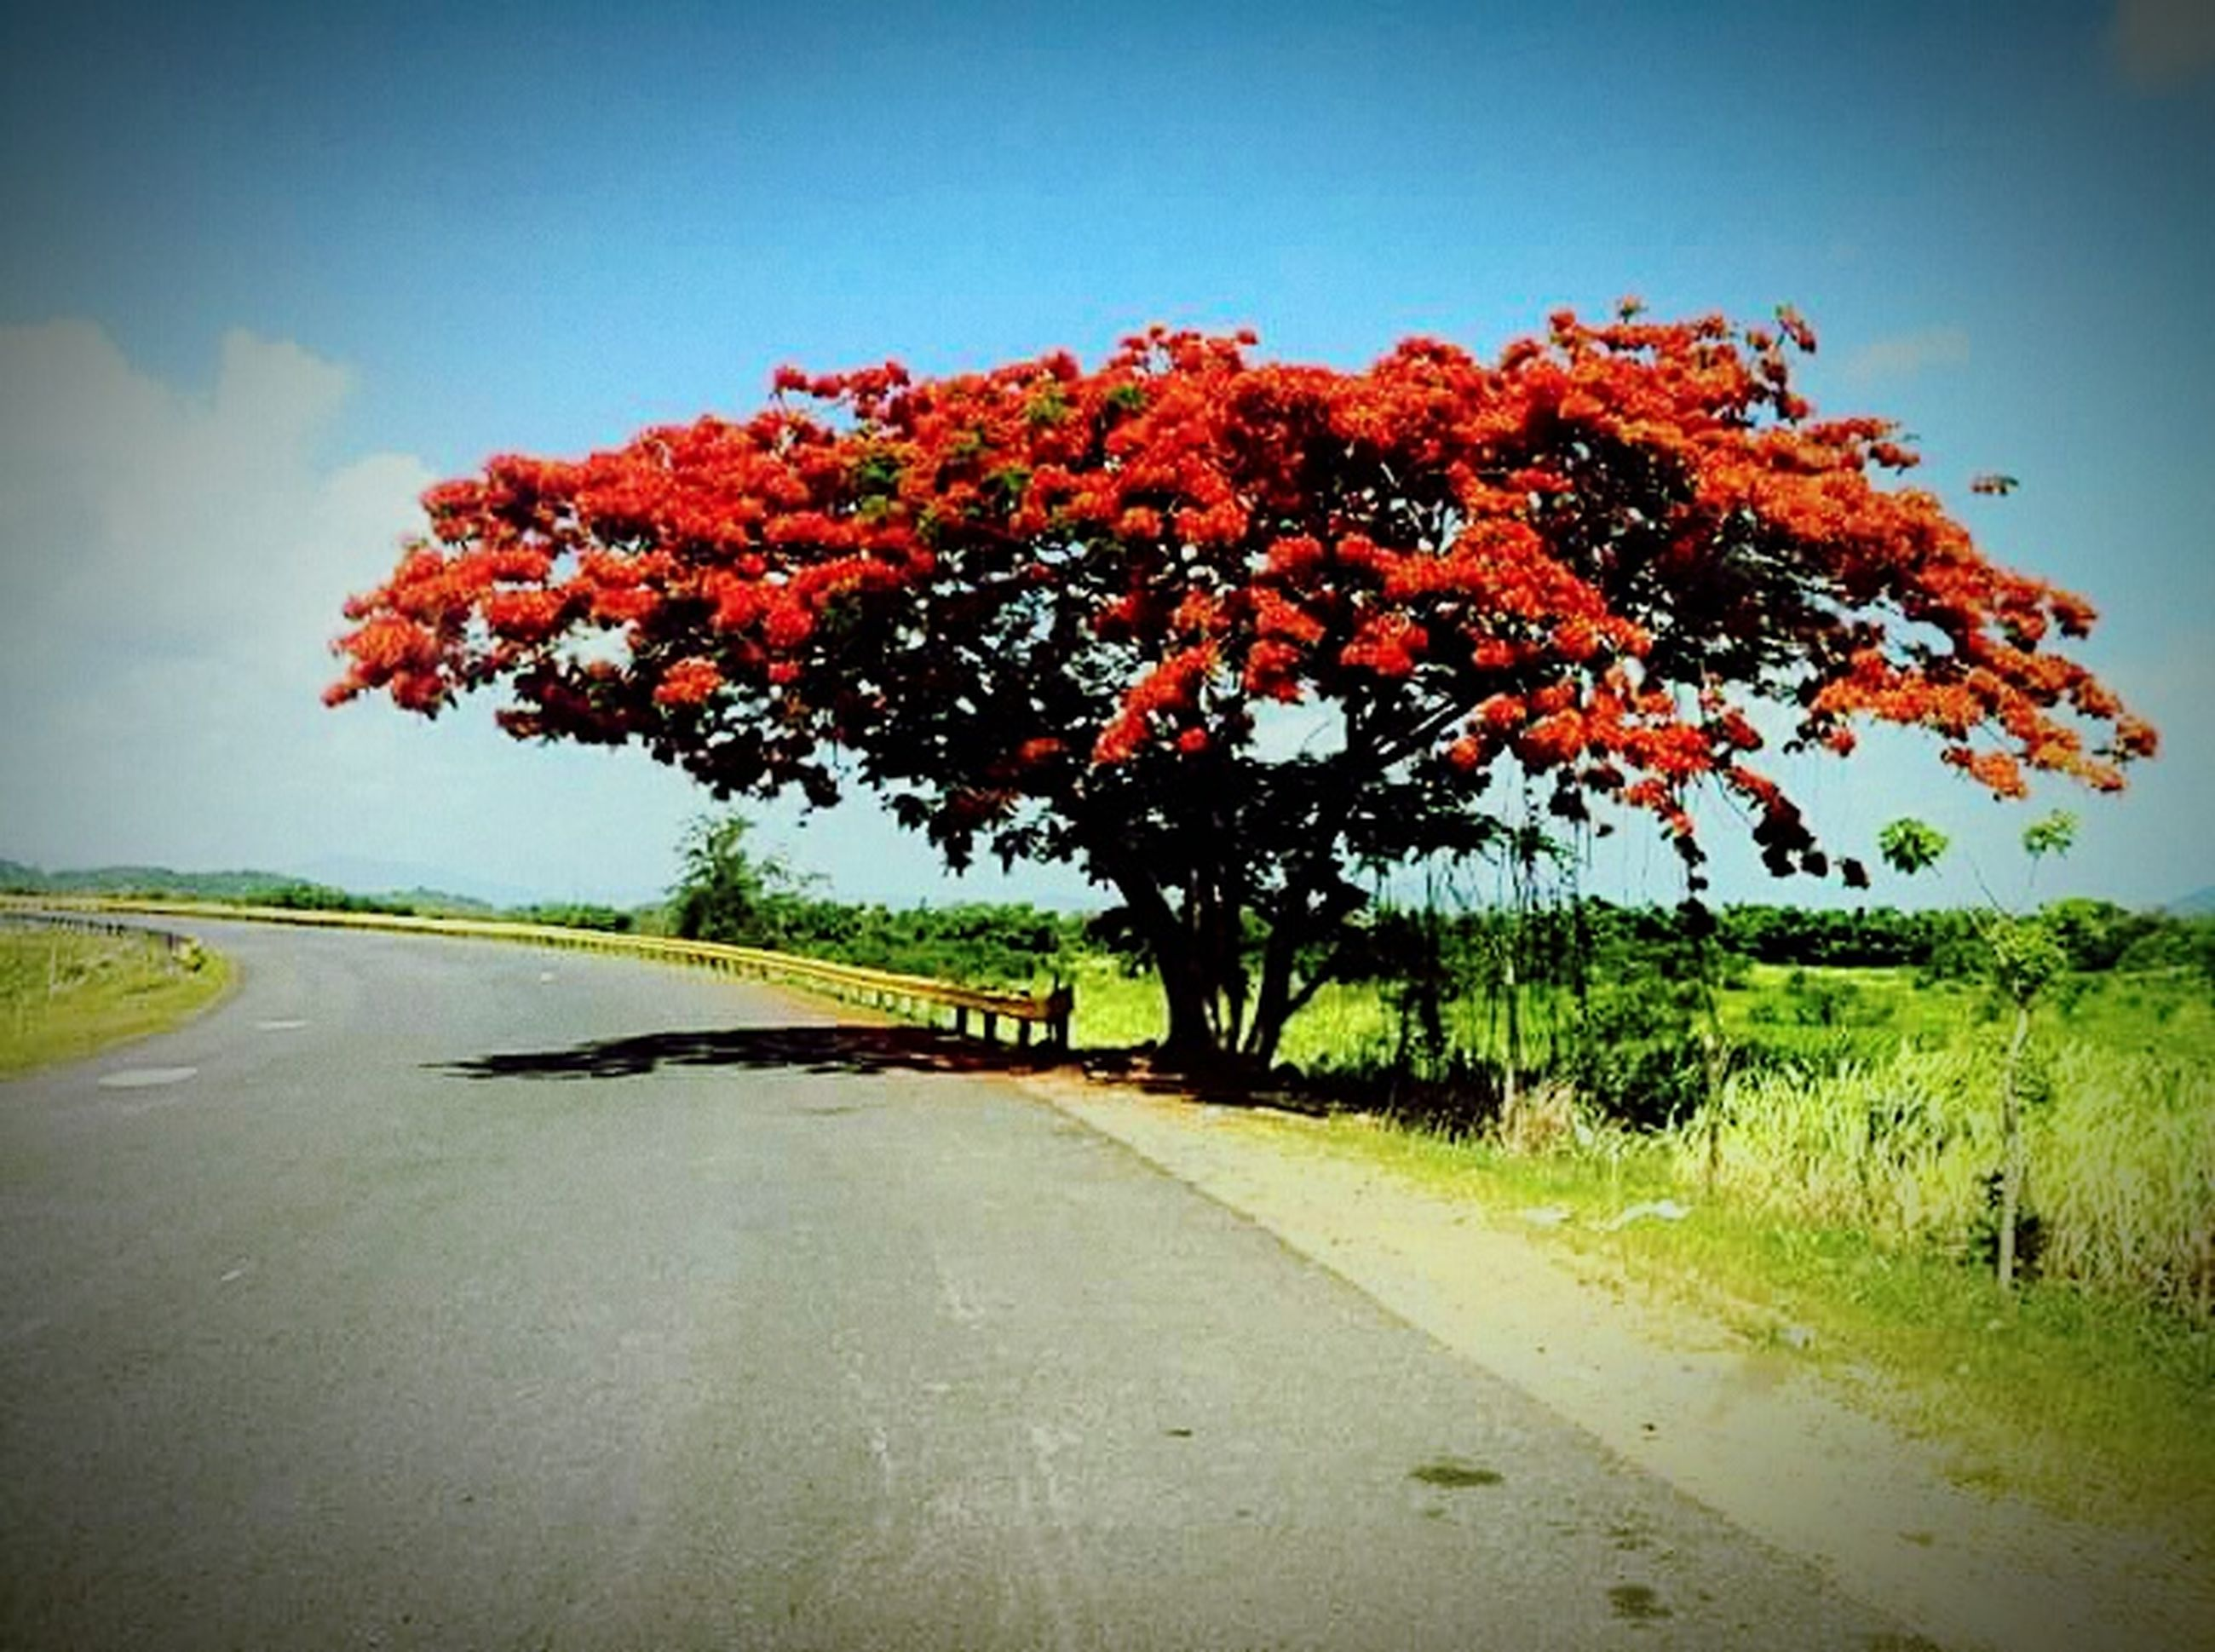 tree, road, the way forward, transportation, tranquility, country road, tranquil scene, landscape, nature, clear sky, beauty in nature, autumn, scenics, diminishing perspective, sky, field, growth, season, change, red